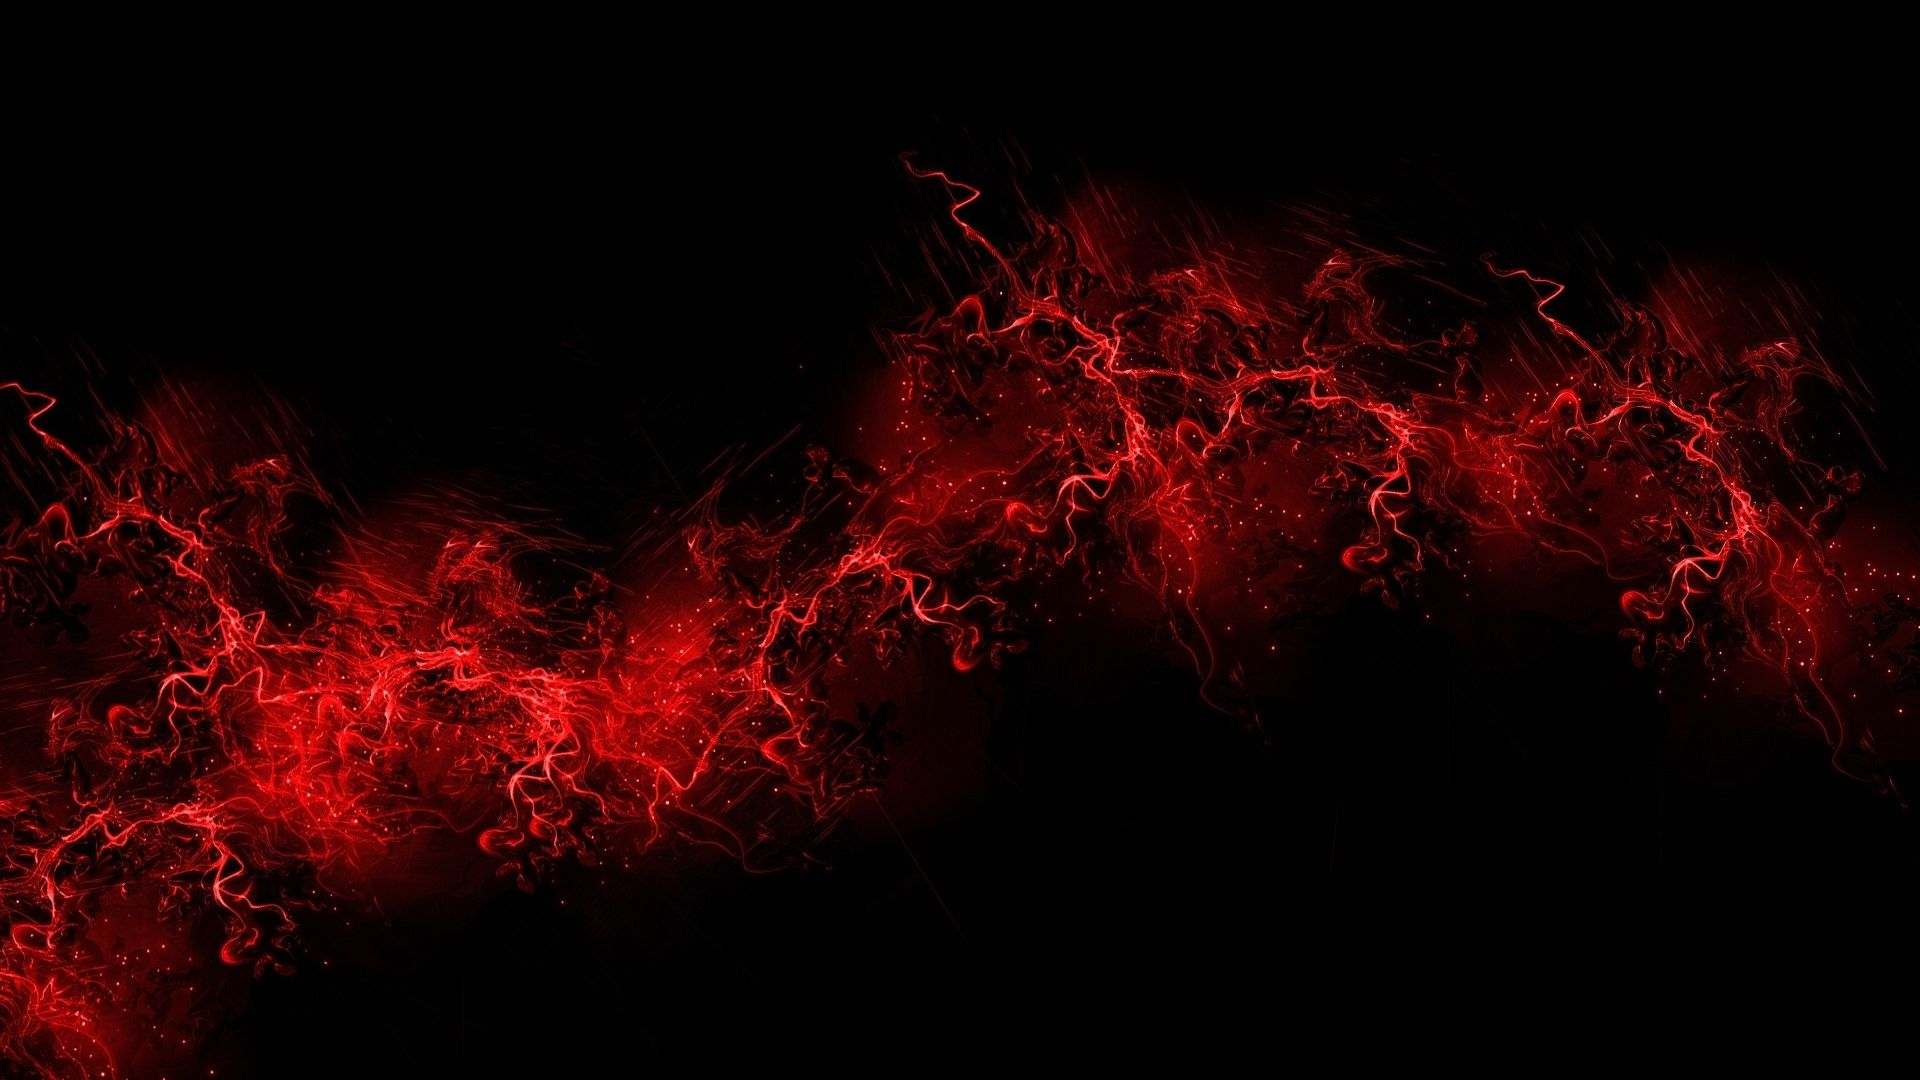 Hd background images red and black full hd 1080p abstract hd background images red and black full hd 1080p abstract wallpapers desktop backgrounds hd inside voltagebd Image collections